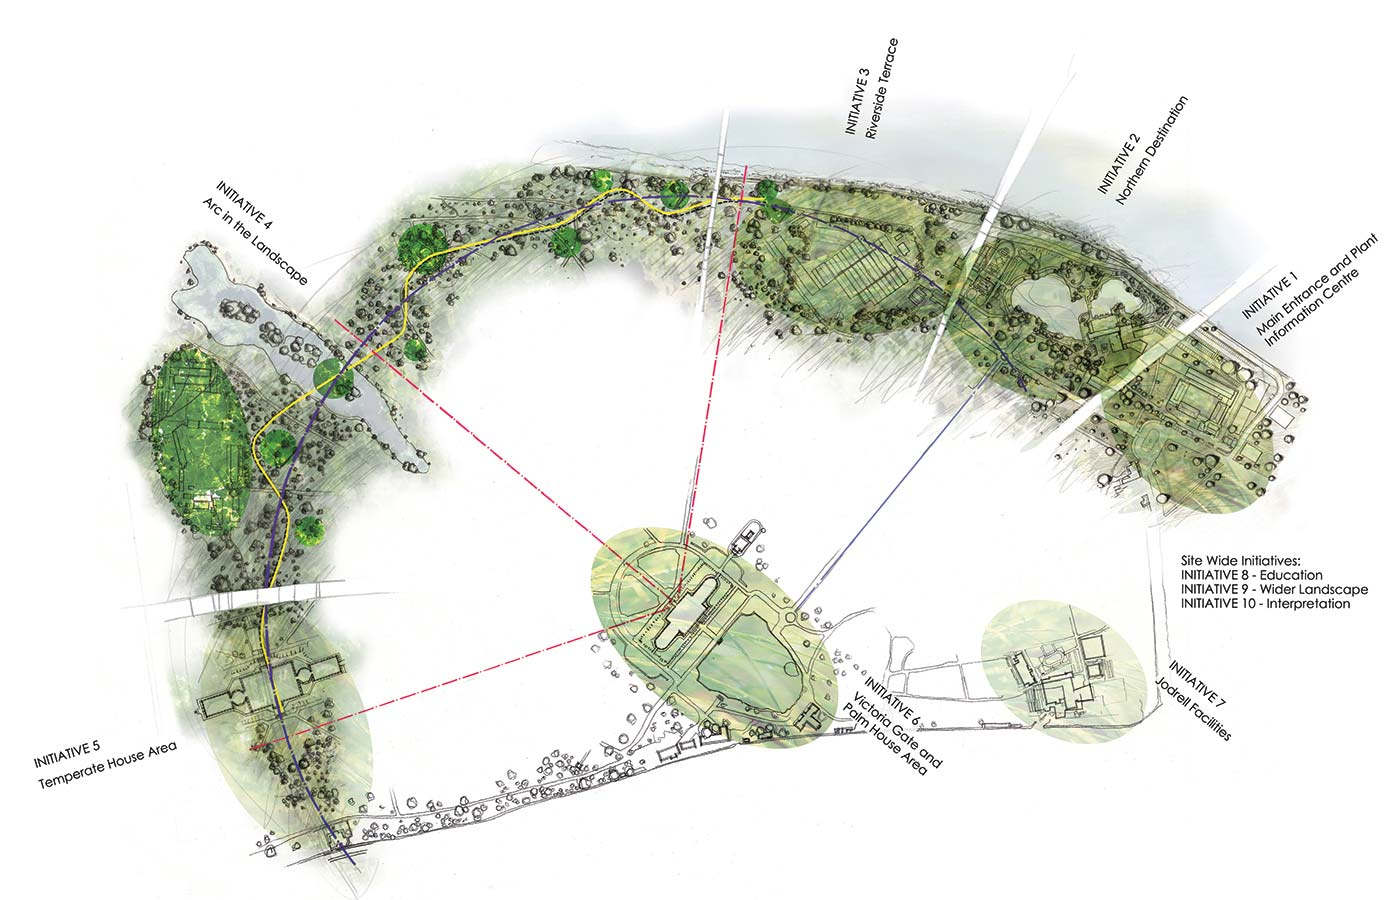 Royal Botanic Gardens Kew Strategic Development Plan Wilkinsoneyre